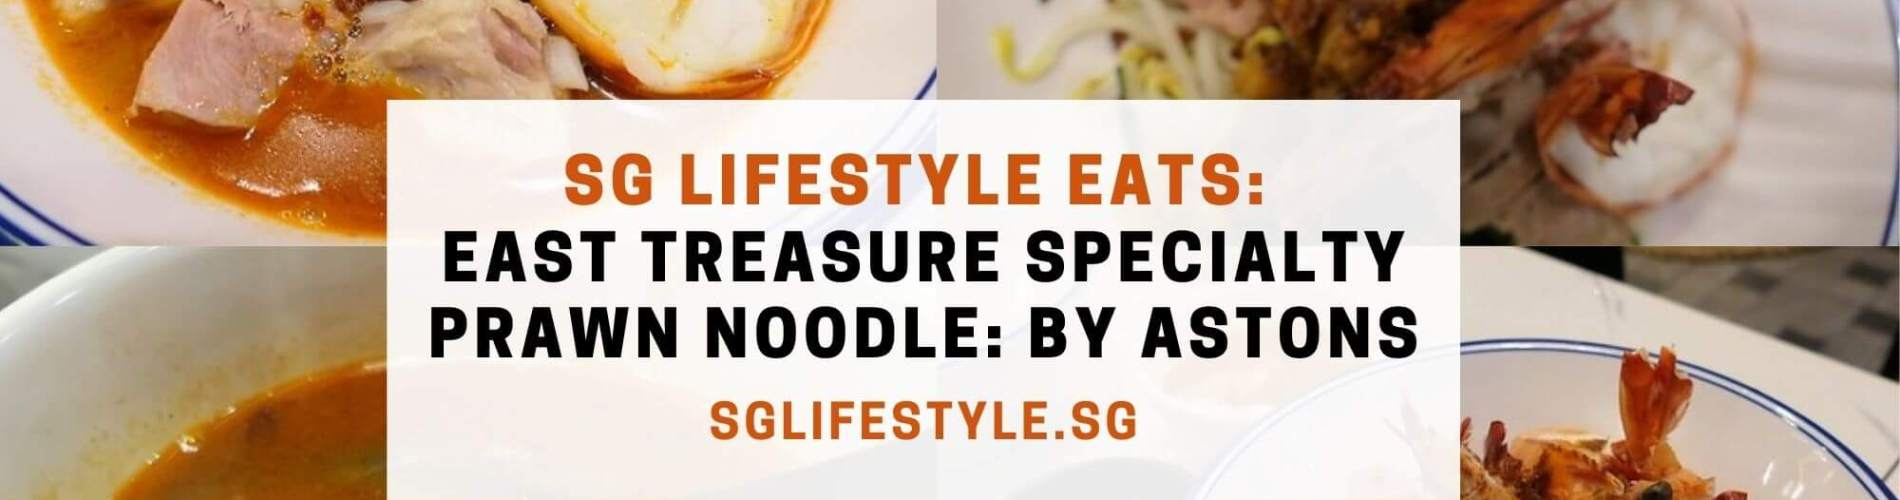 East Treasure Specialty Prawn Noodle By Astons Review